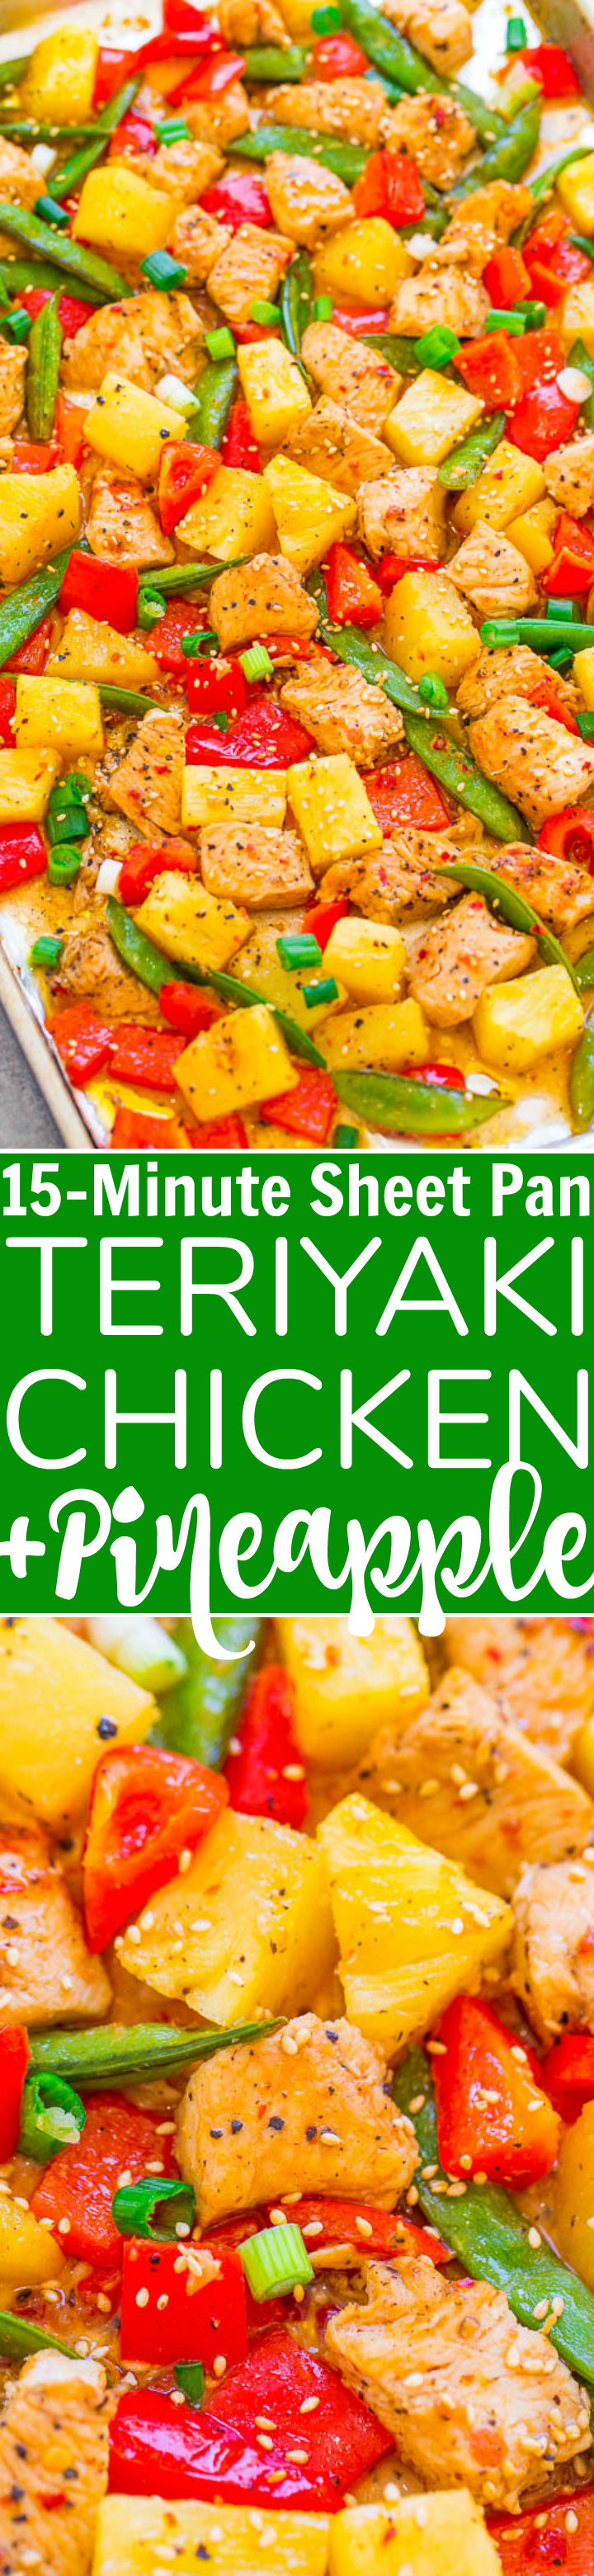 15 Minute Teriyaki Chicken and Pineapple Bread - Quick, EASY and loaded with a fabulous Teriyaki flavor! Tender chicken, juicy pineapple, and crispy, tender veggies make for a delicious skillet meal with zero cleanliness!